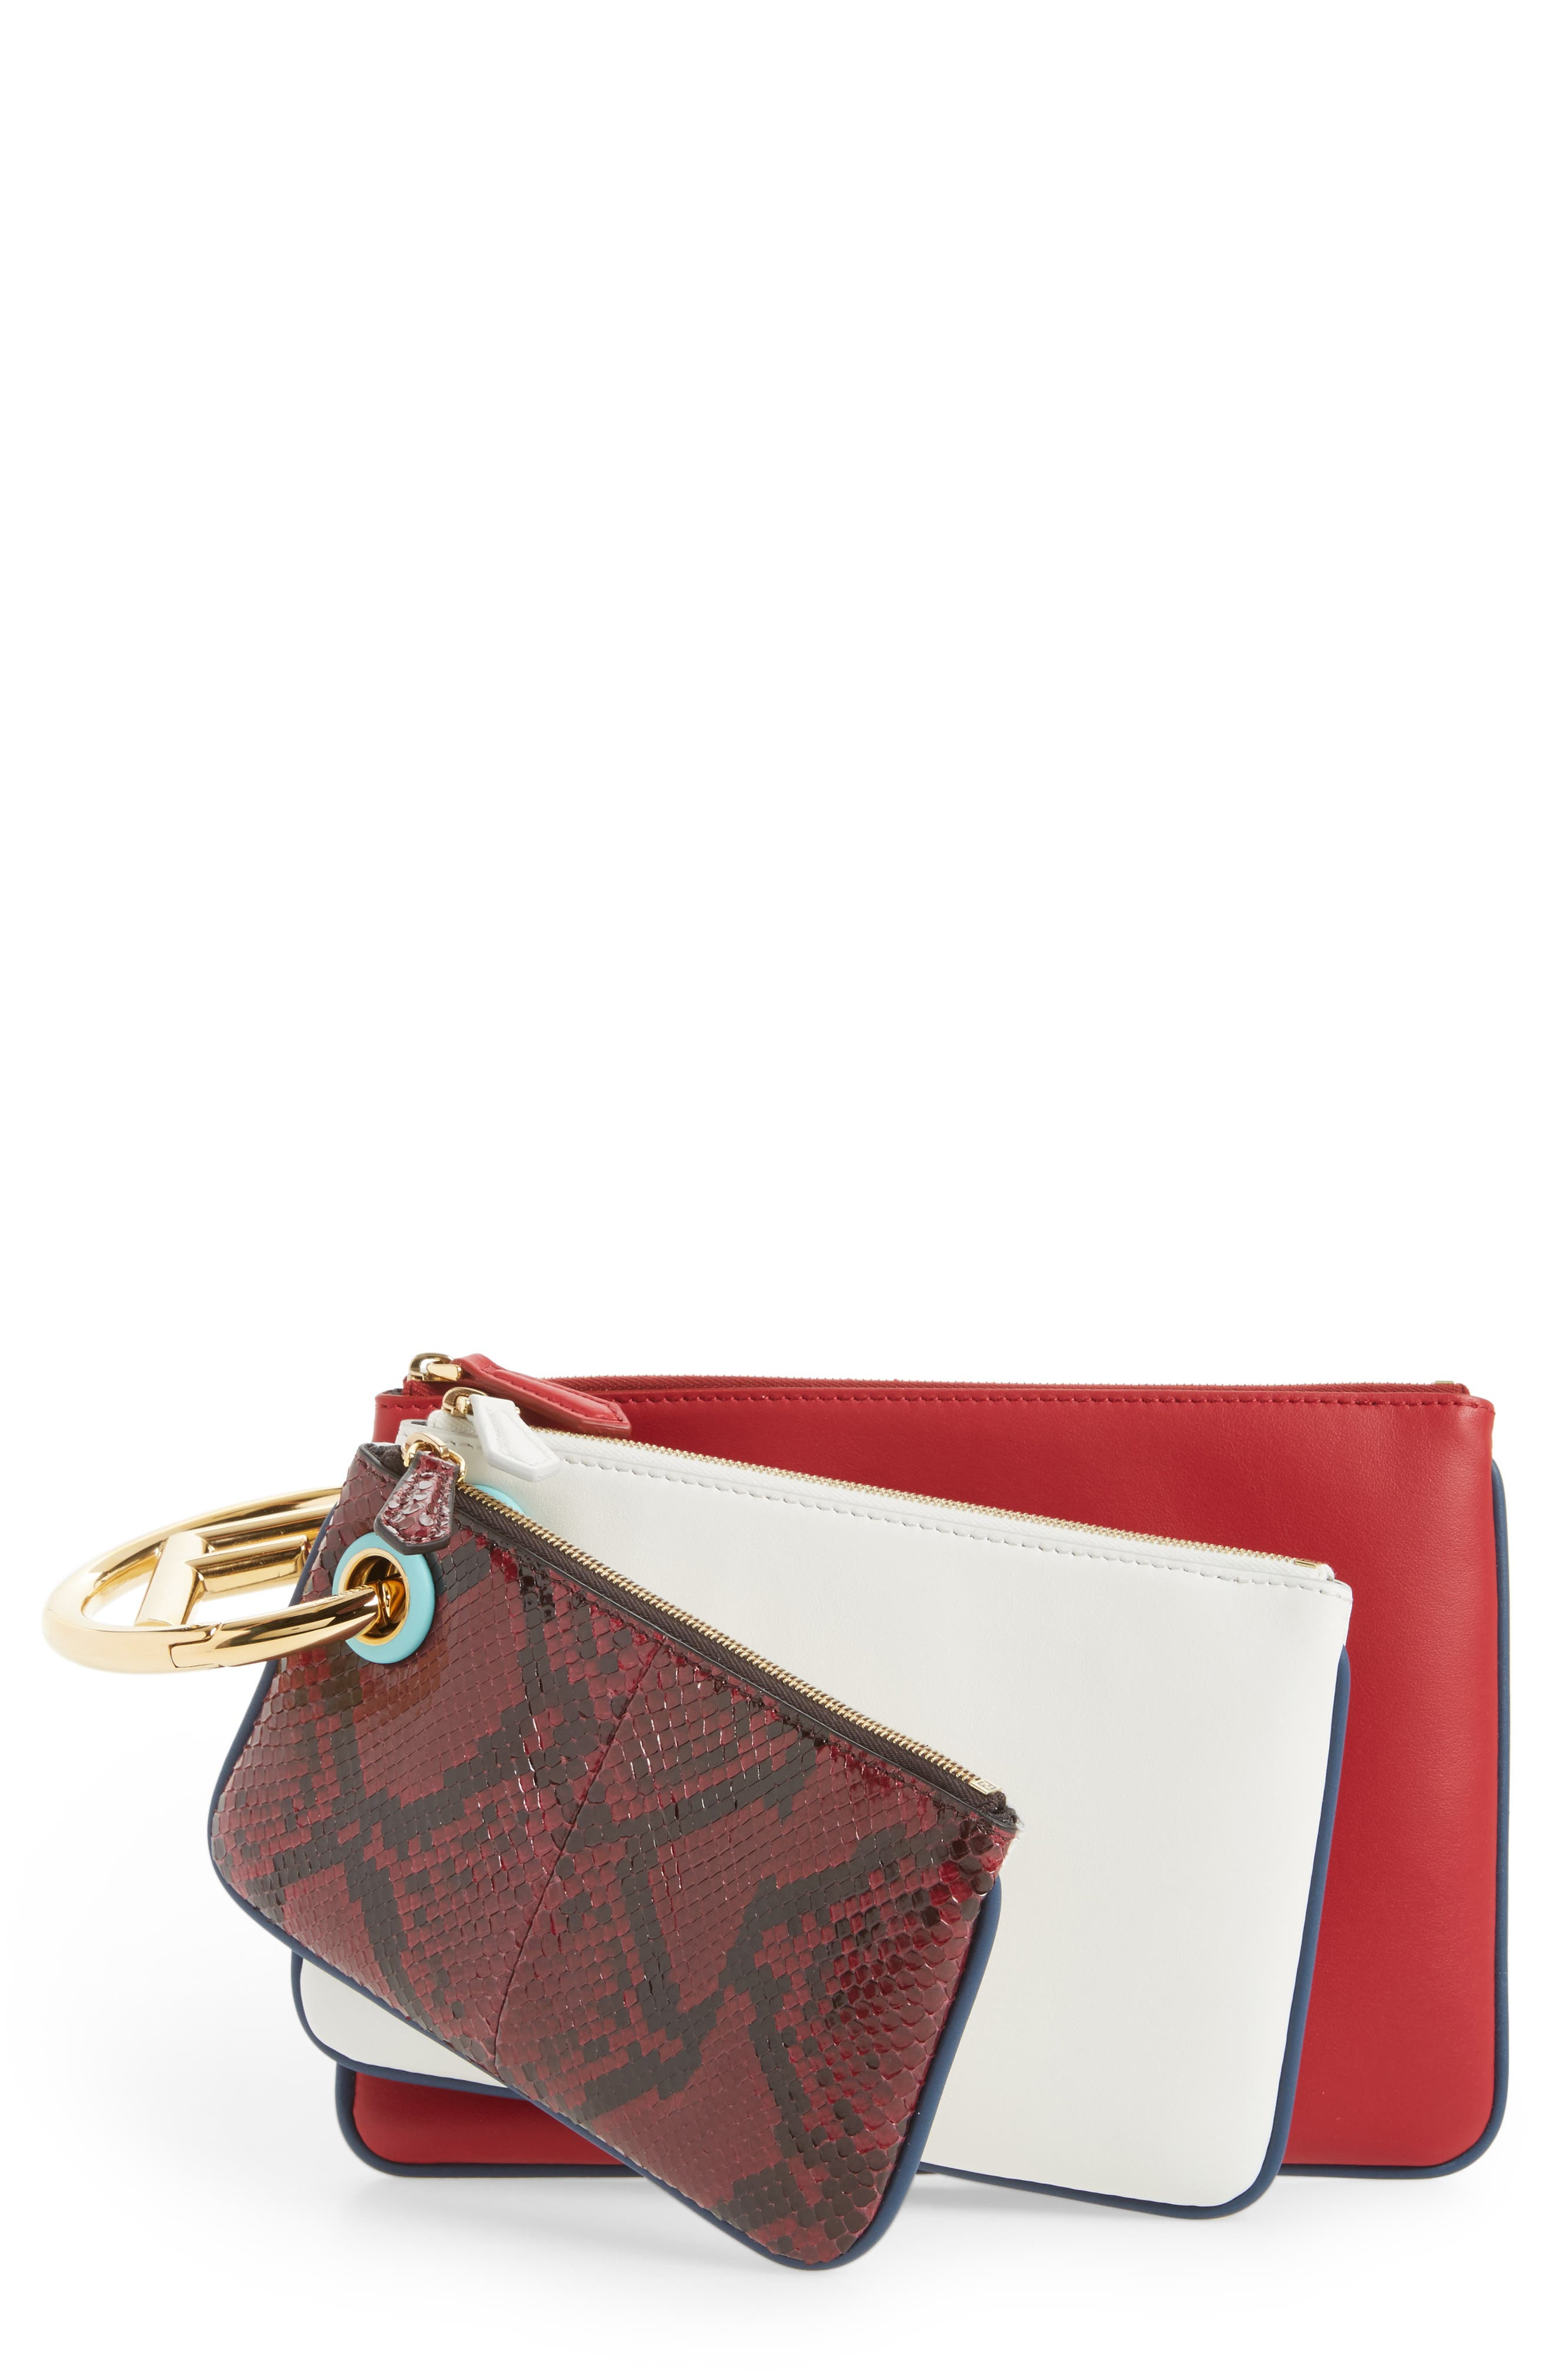 Set of Three Calfskin Leather & Genuine Python Pouches,                         Main,                         color, Red/ White/ Python